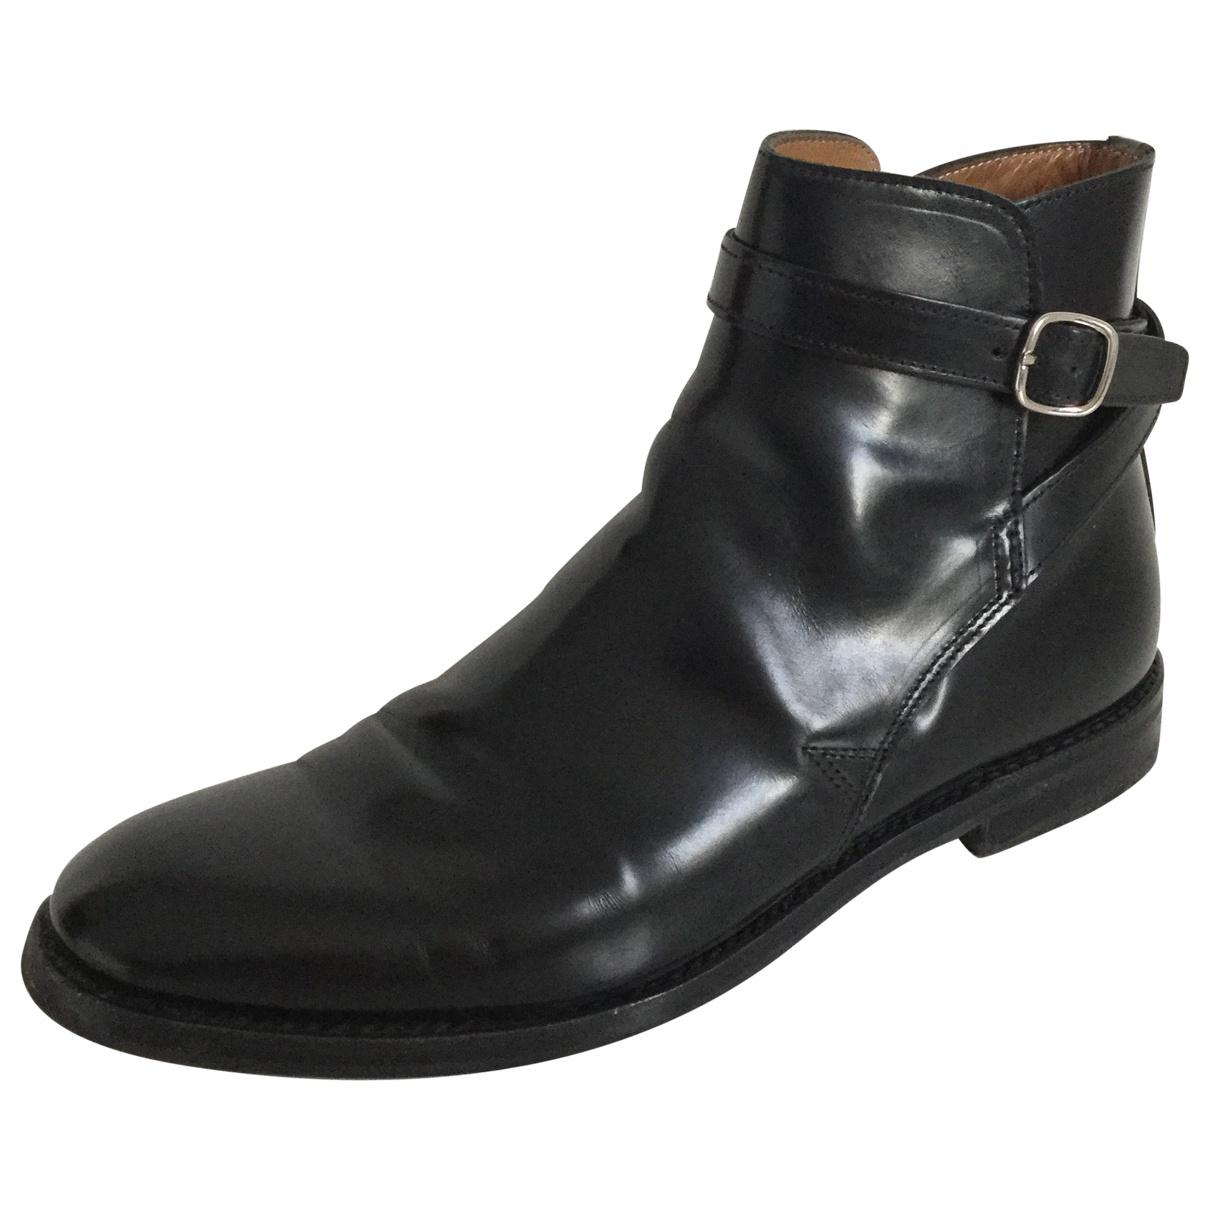 Pre-owned - Leather boots Churchs